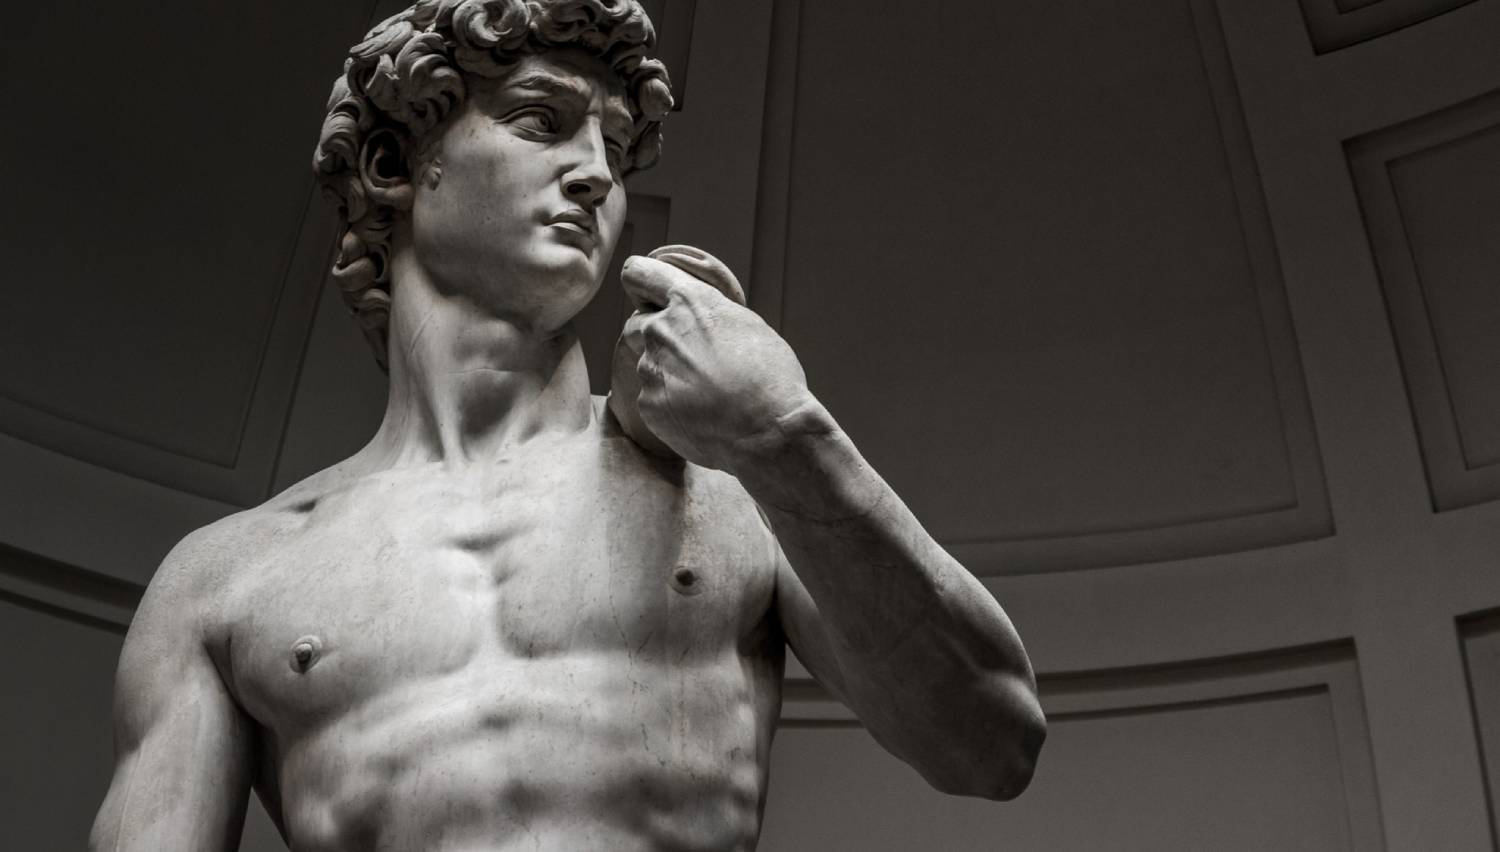 Statue of David - Things To Do In Florence